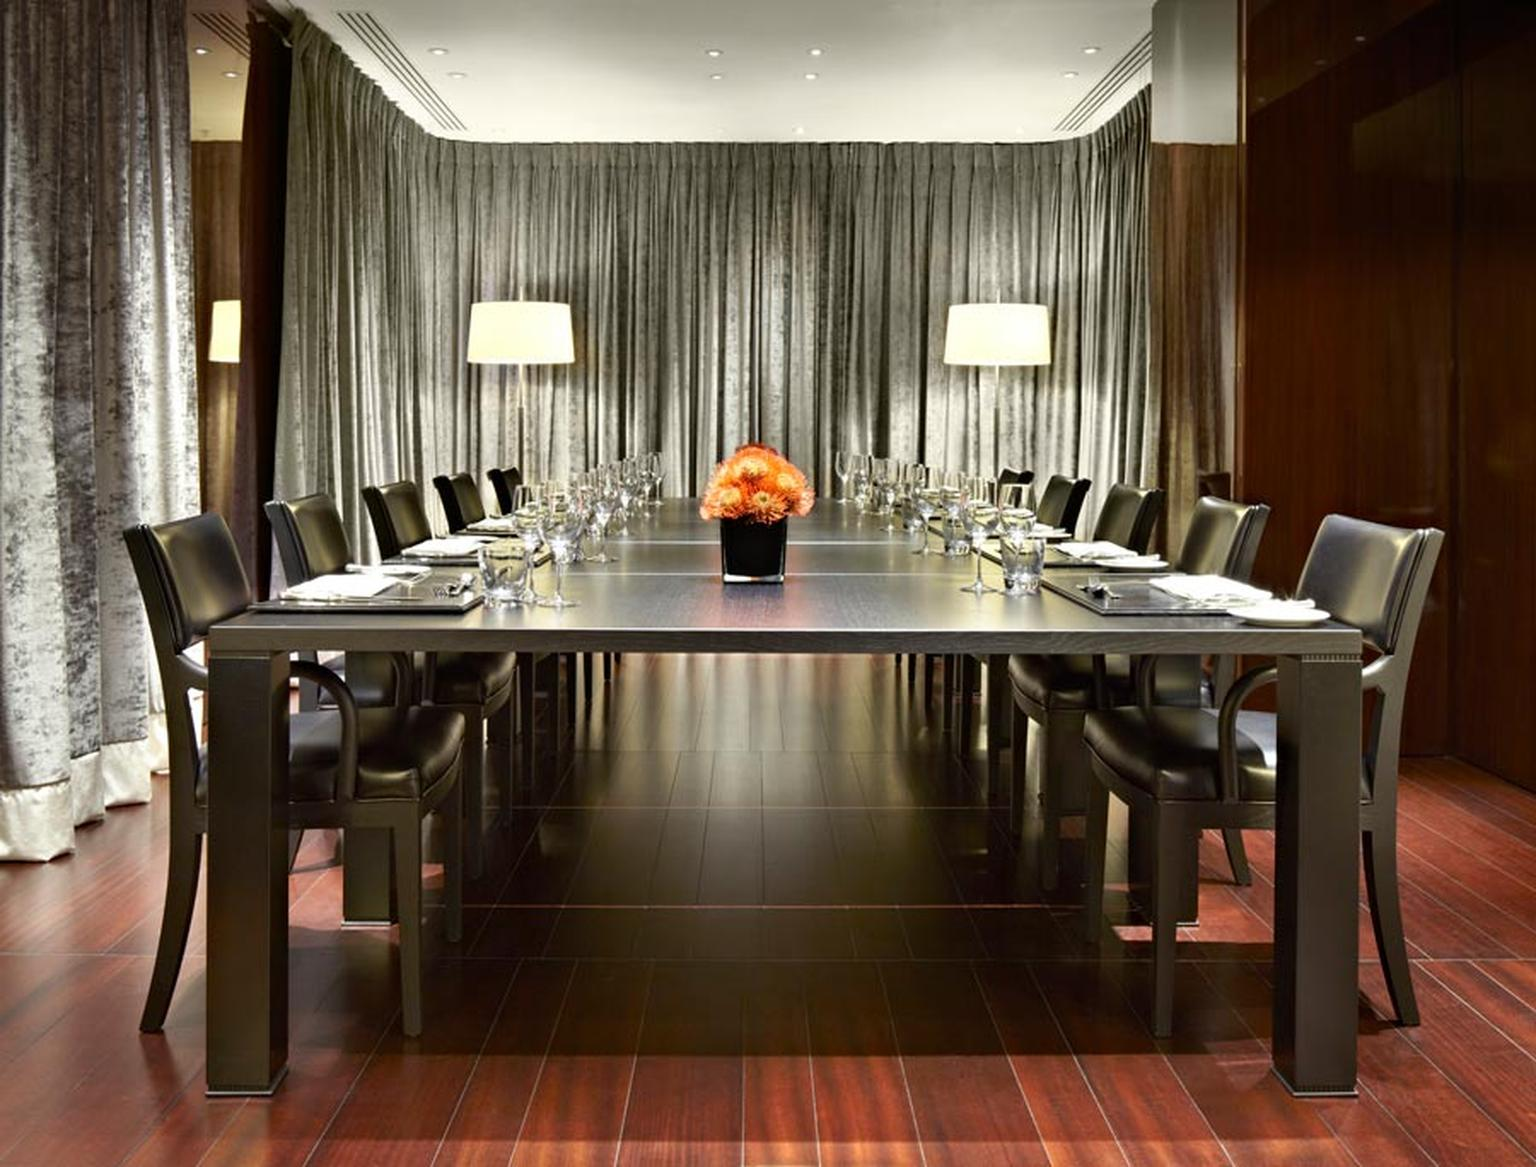 Bulgari-Hotel-Private-dininig-room